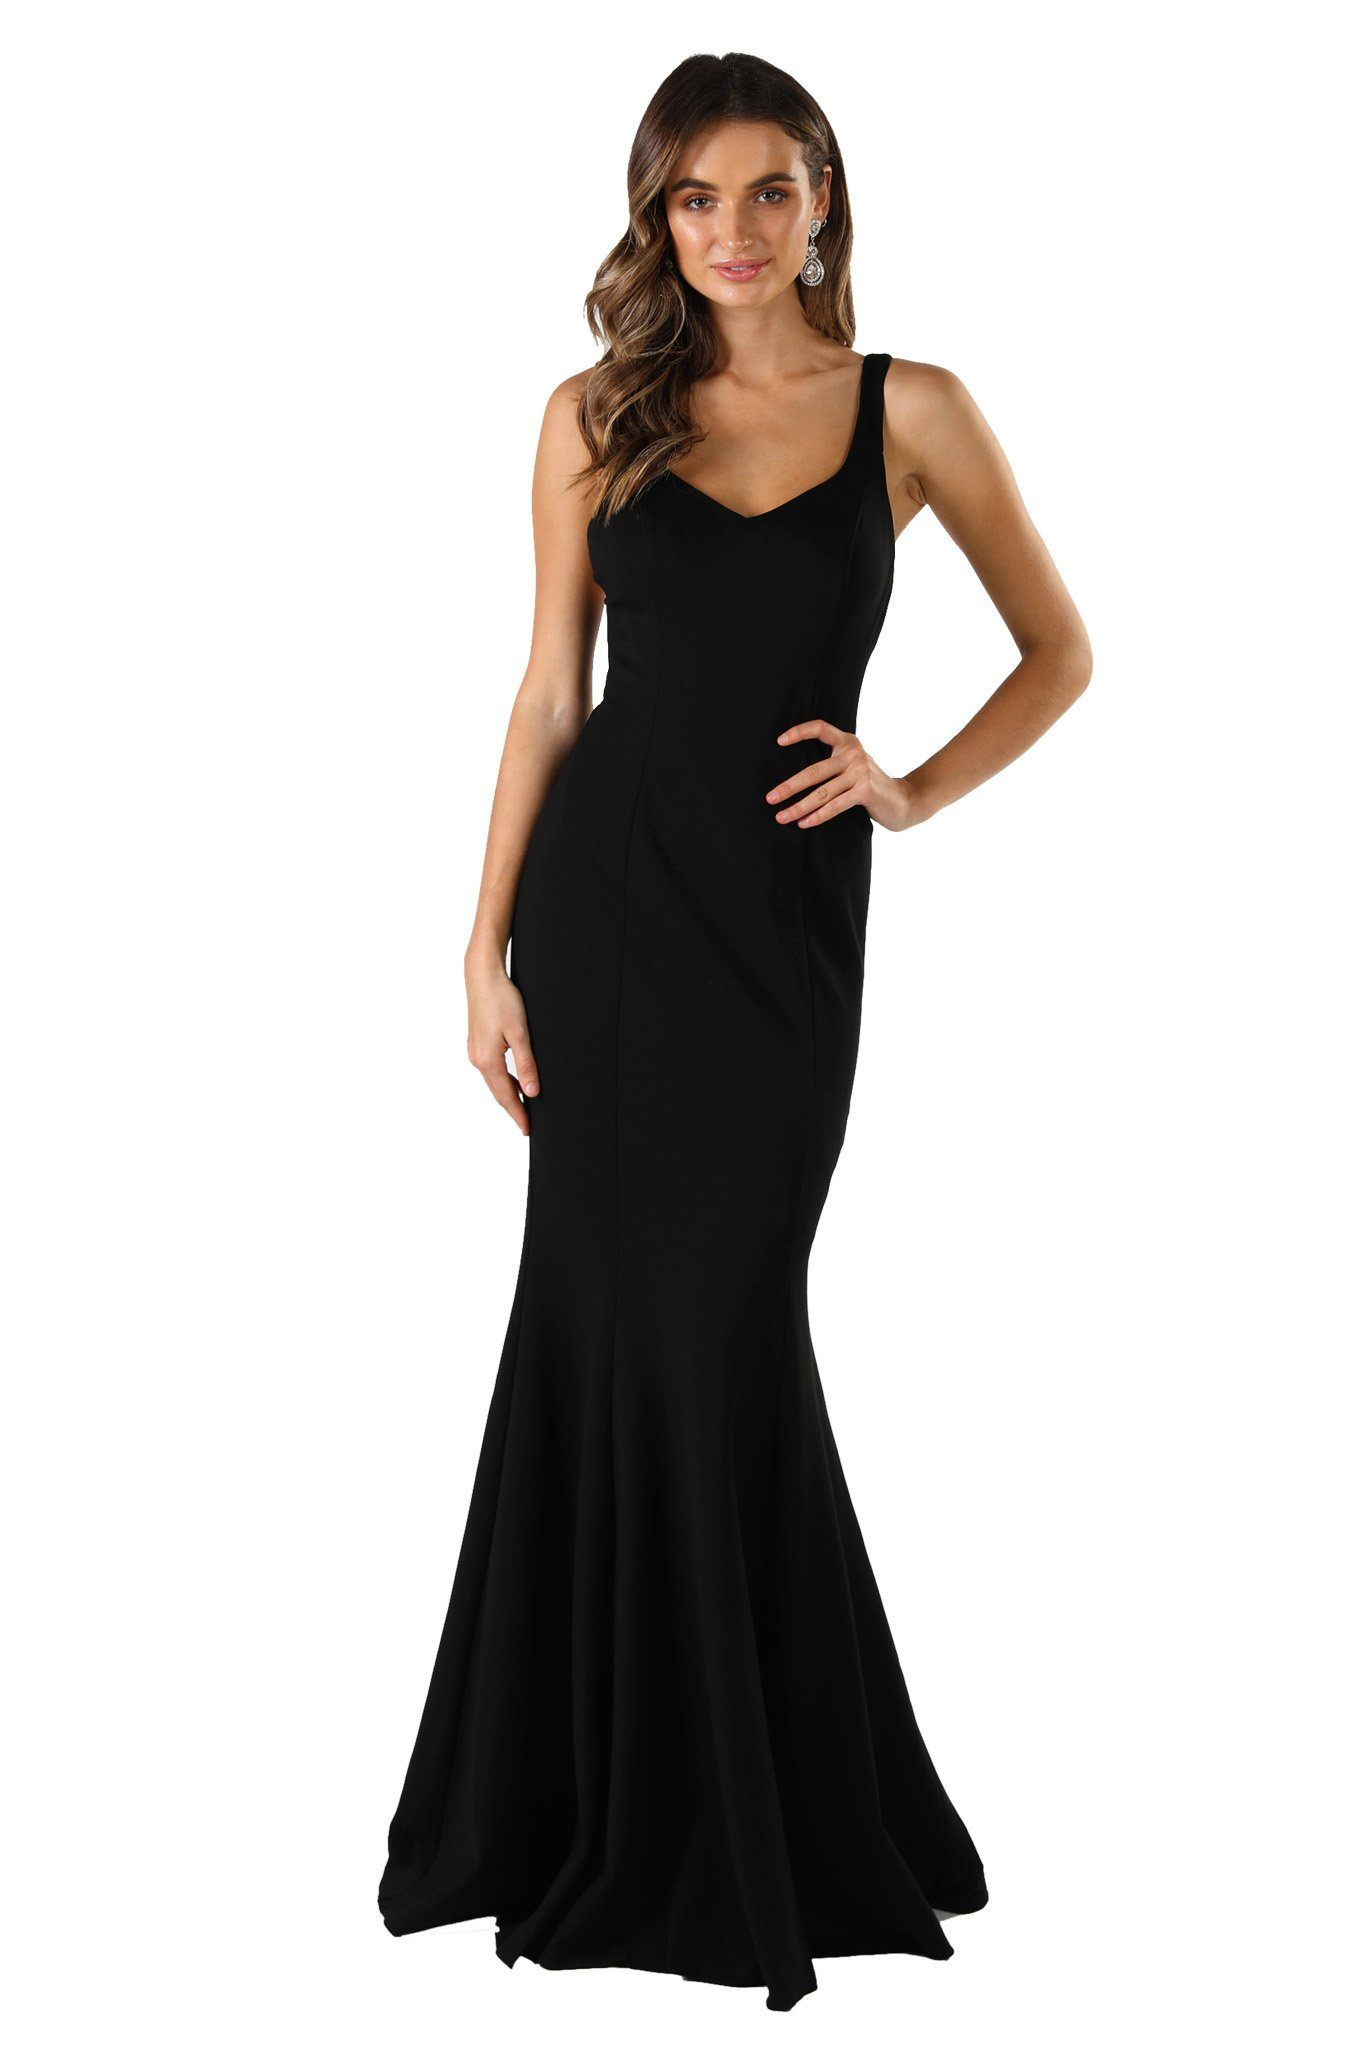 Black sleeveless form fitting formal maxi dress featuring subtle sweetheart neckline, shoulder straps, mermaid fishtail and open back design